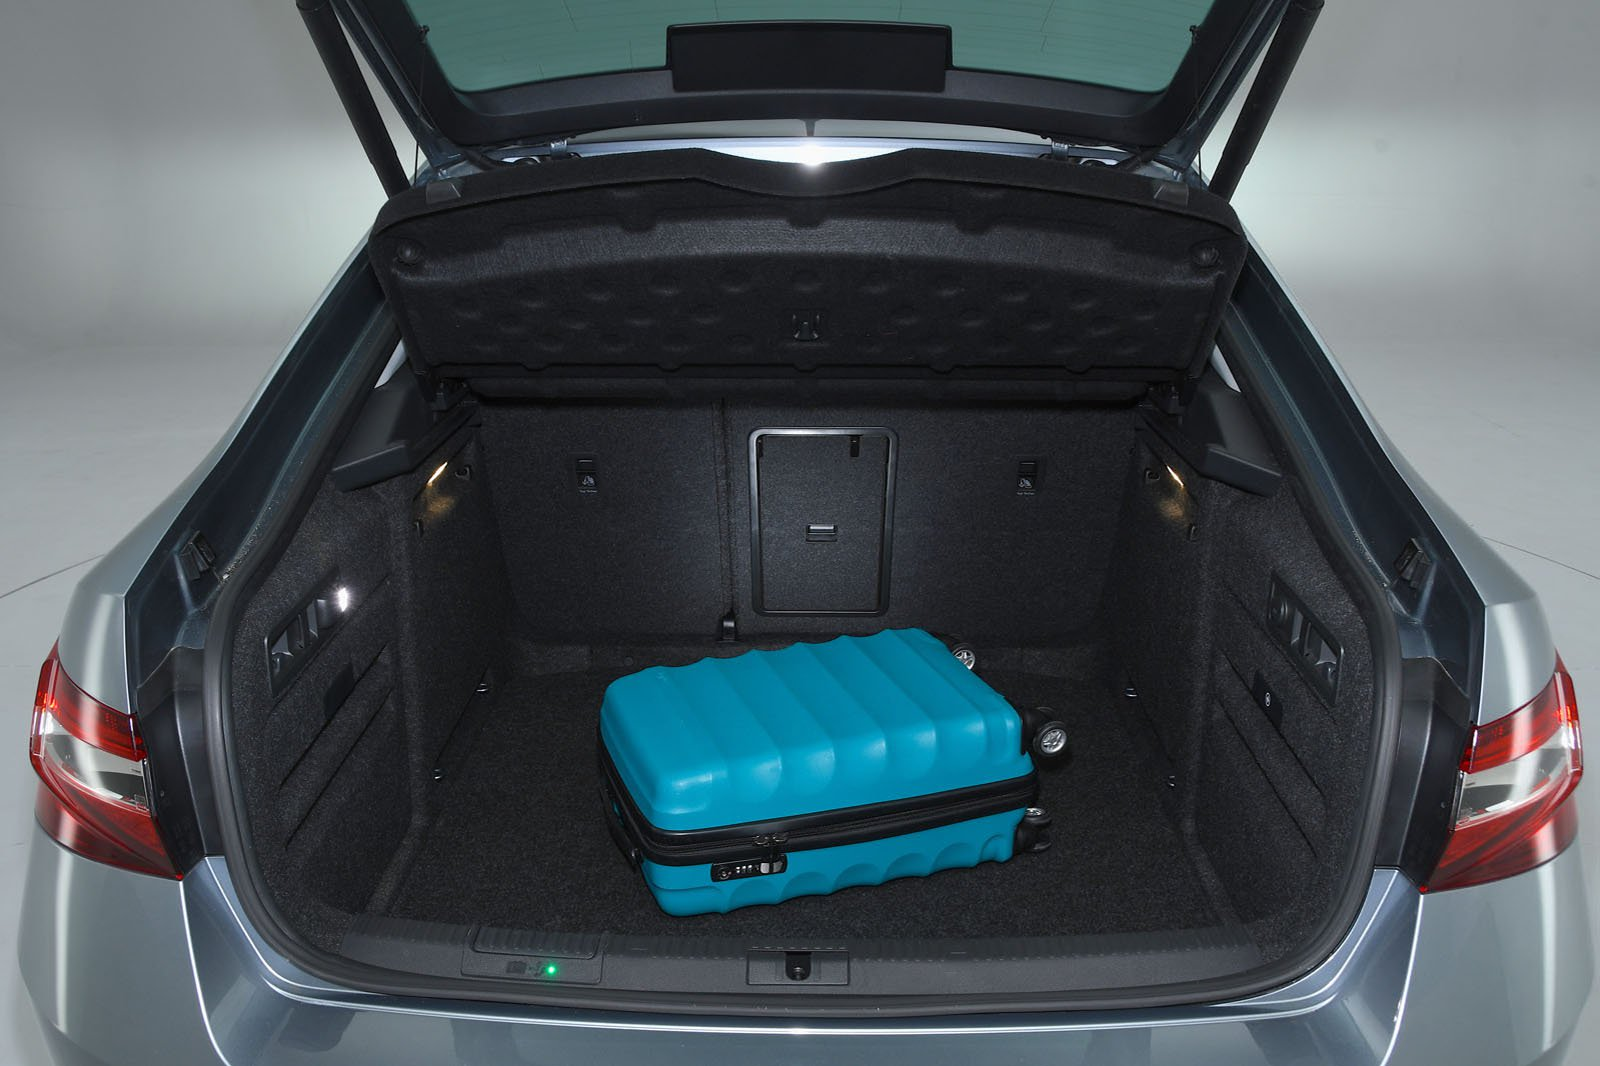 Skoda Superb Boot